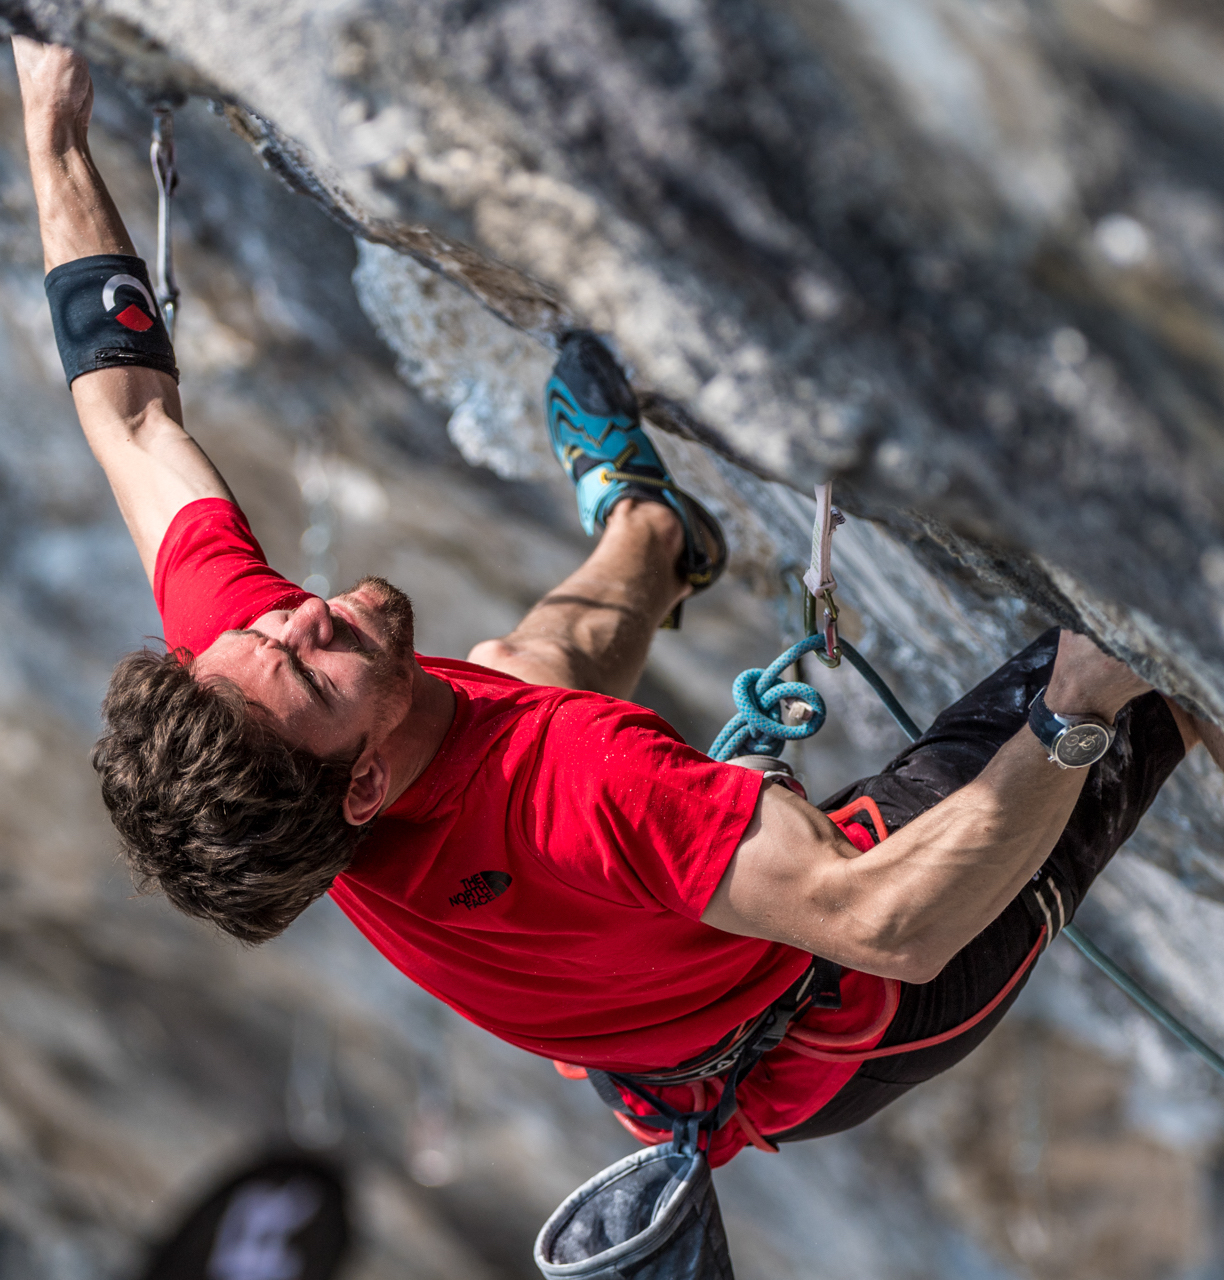 il climber Ghisolfi entra in EIS